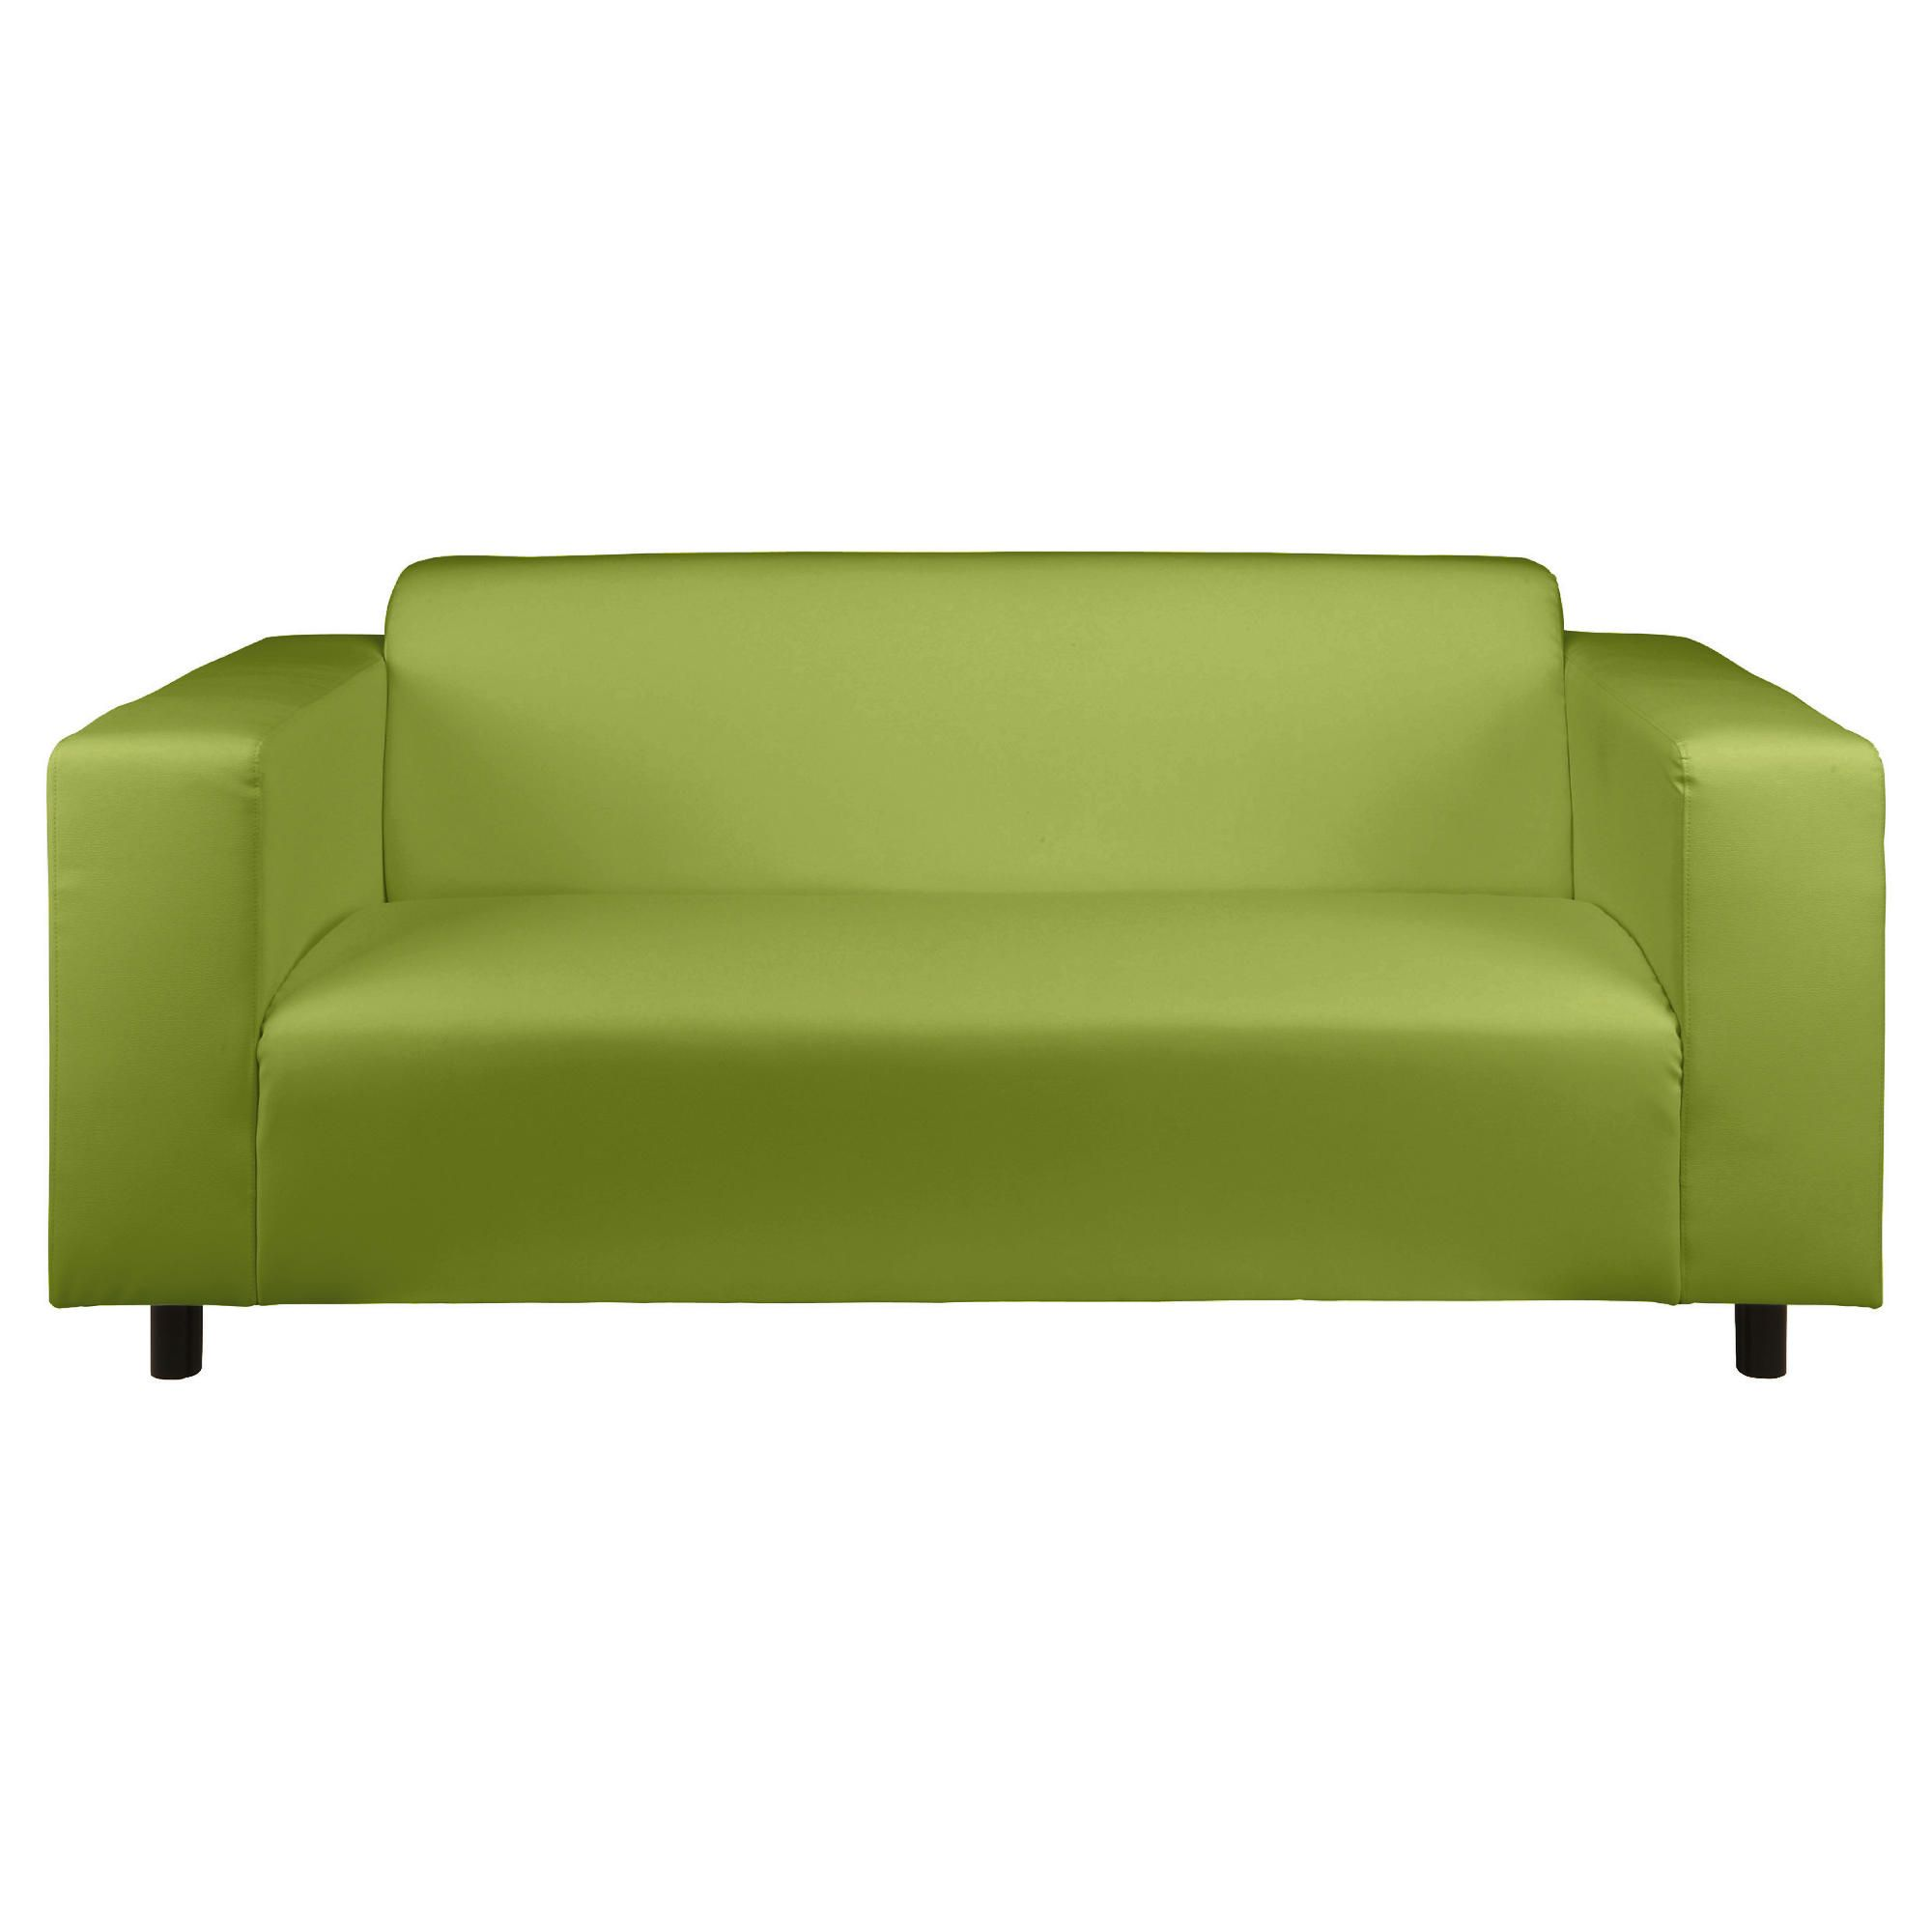 Green Leather Chesterfield Sofa Images